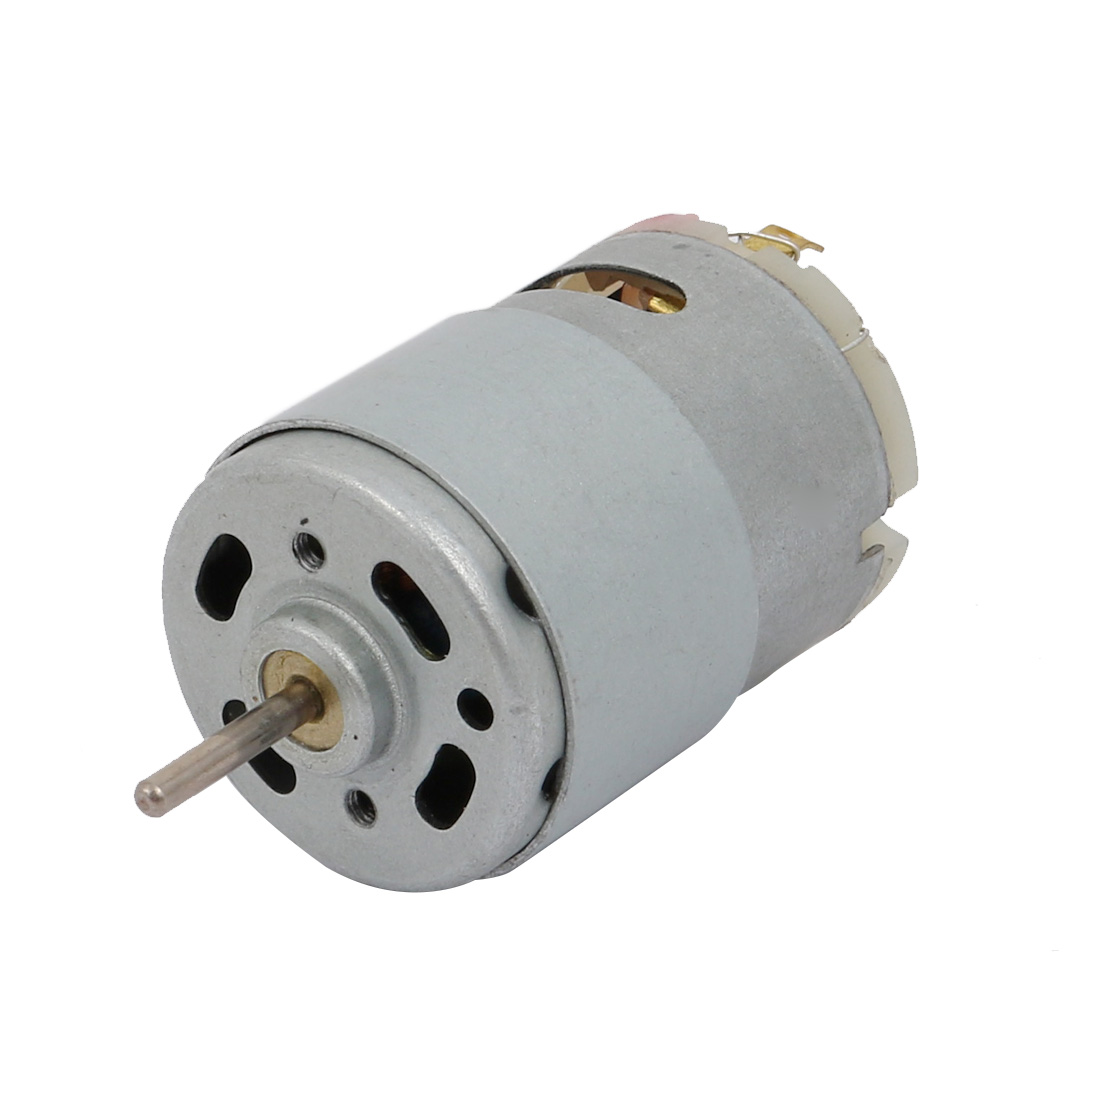 DC12V 6500RPM 2.3mm Dia Shaft Brushed DC Electric Motor for RC Model Toy